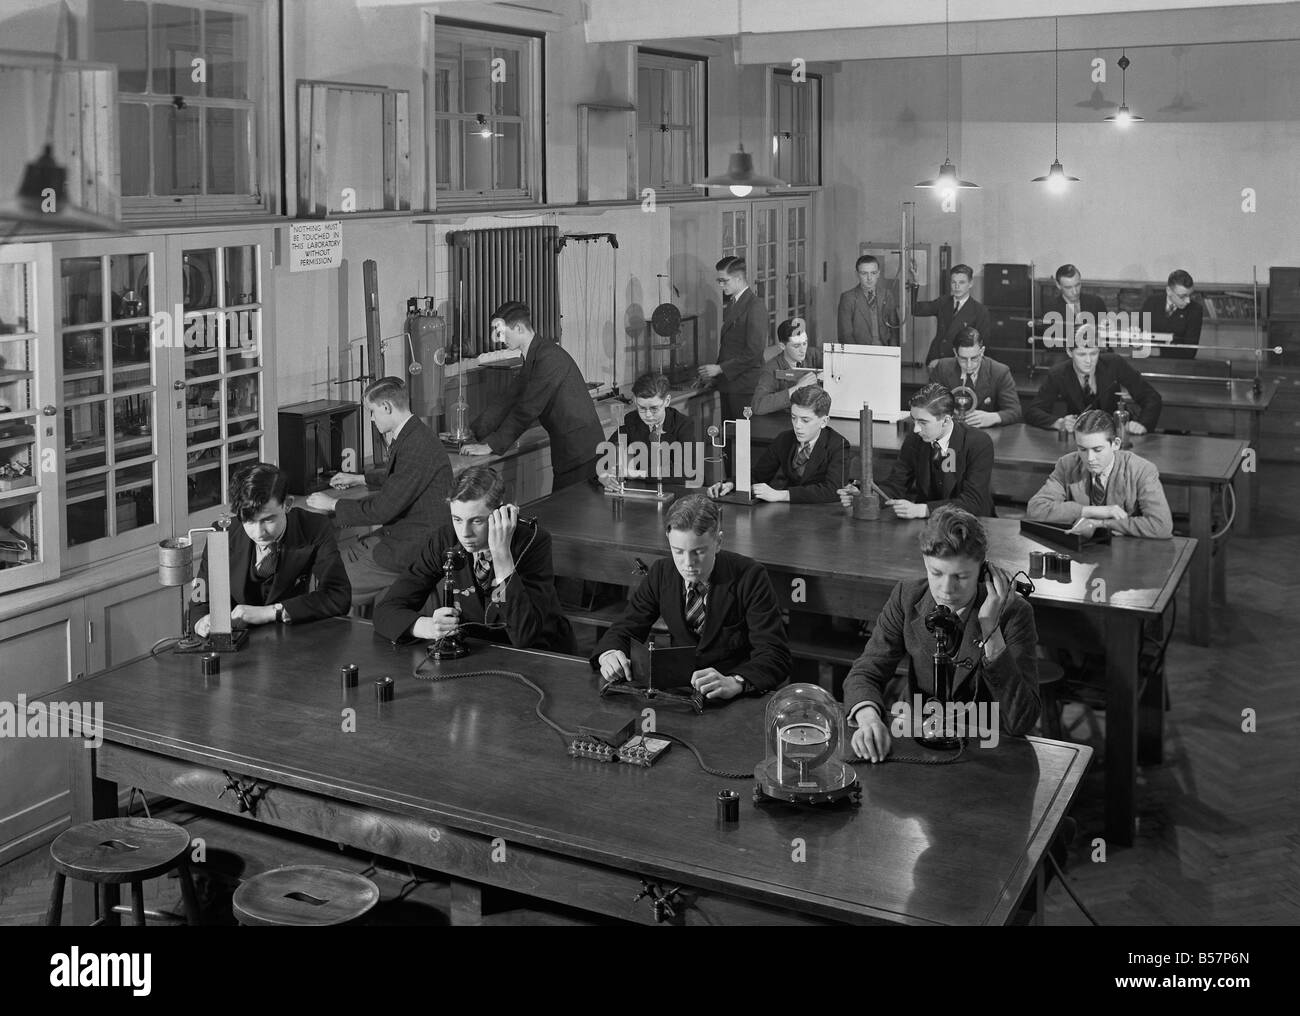 The physics laboratory at a school in Leicester, England, c. 1955 - Stock Image